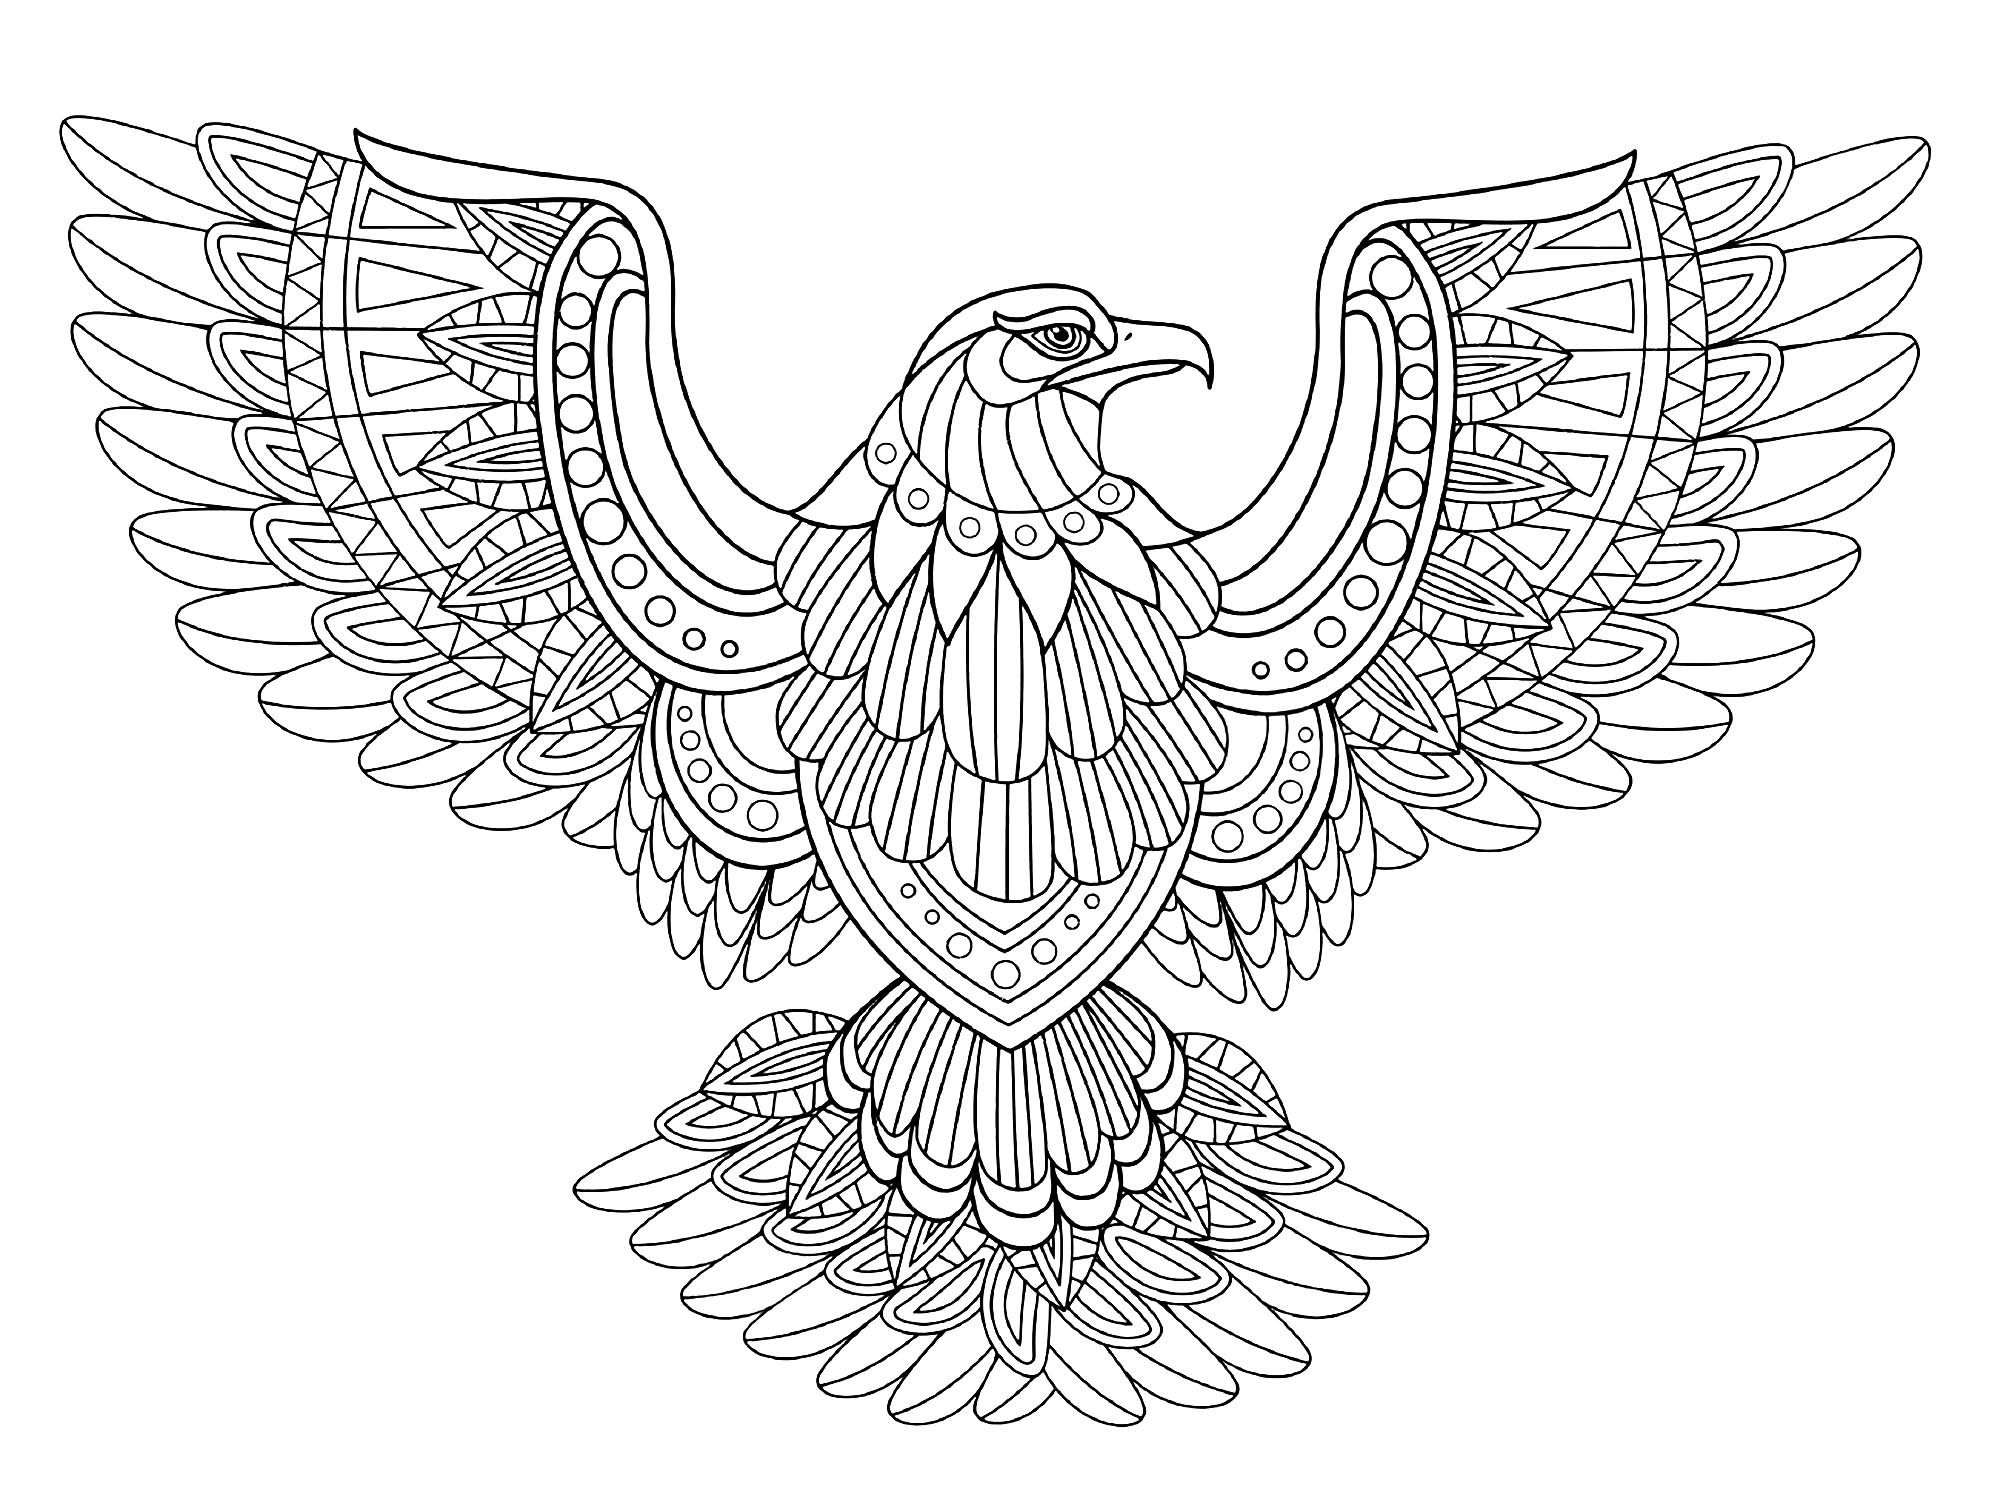 coloring pages eagle flying eagle birds adult coloring pages coloring eagle pages